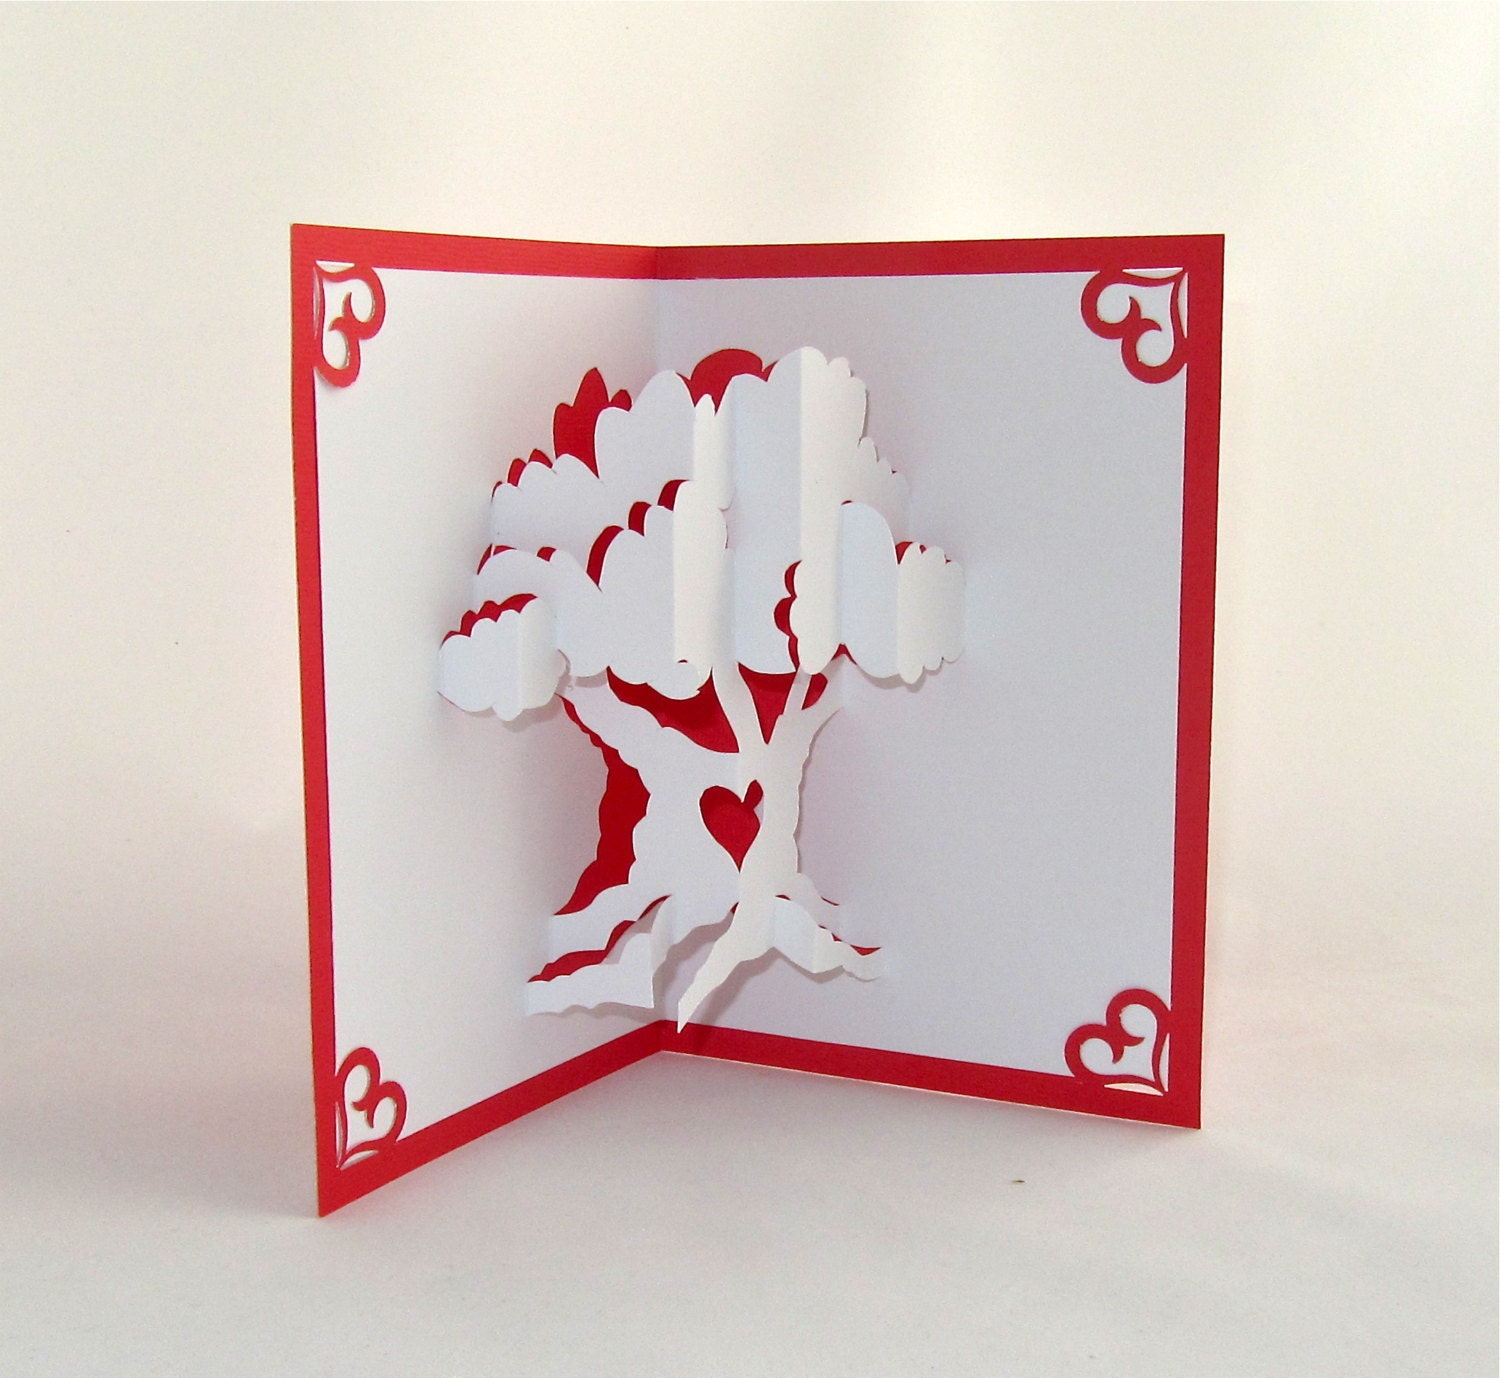 LOVE TREE VALENTINEs Day 3D Pop Up Card Handmade Handcut in